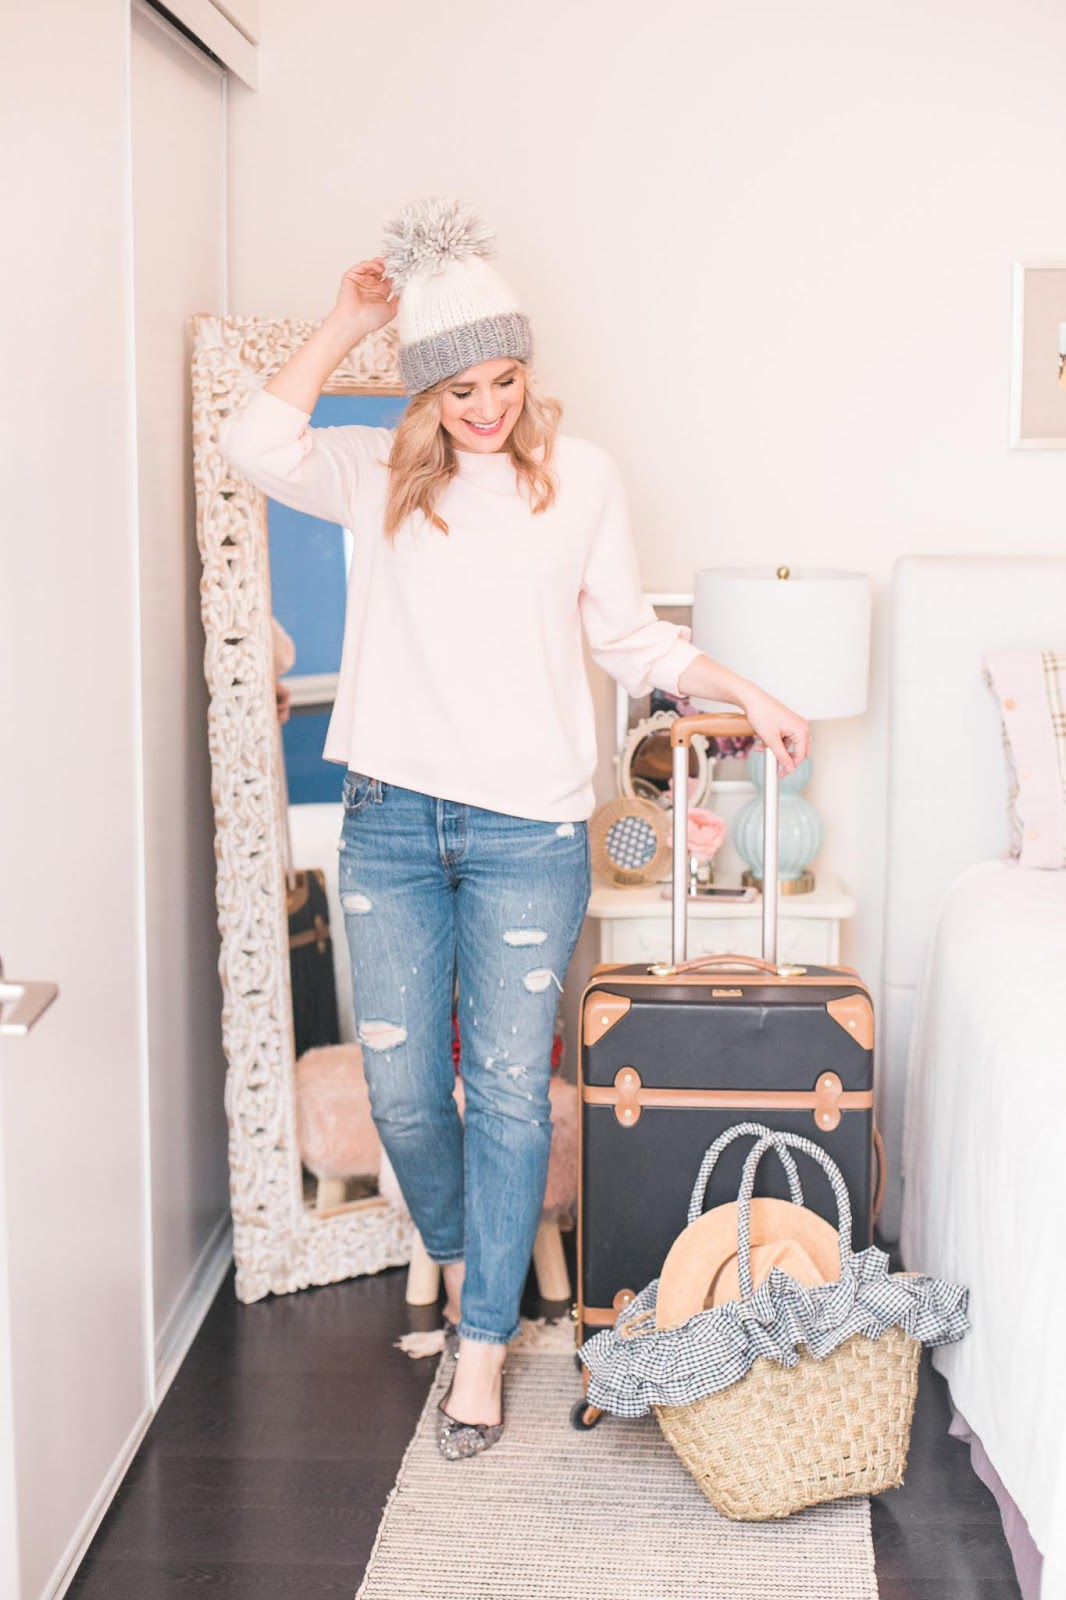 Bijuleni - Traveling Light: 5 Rules to Help You Pack Less